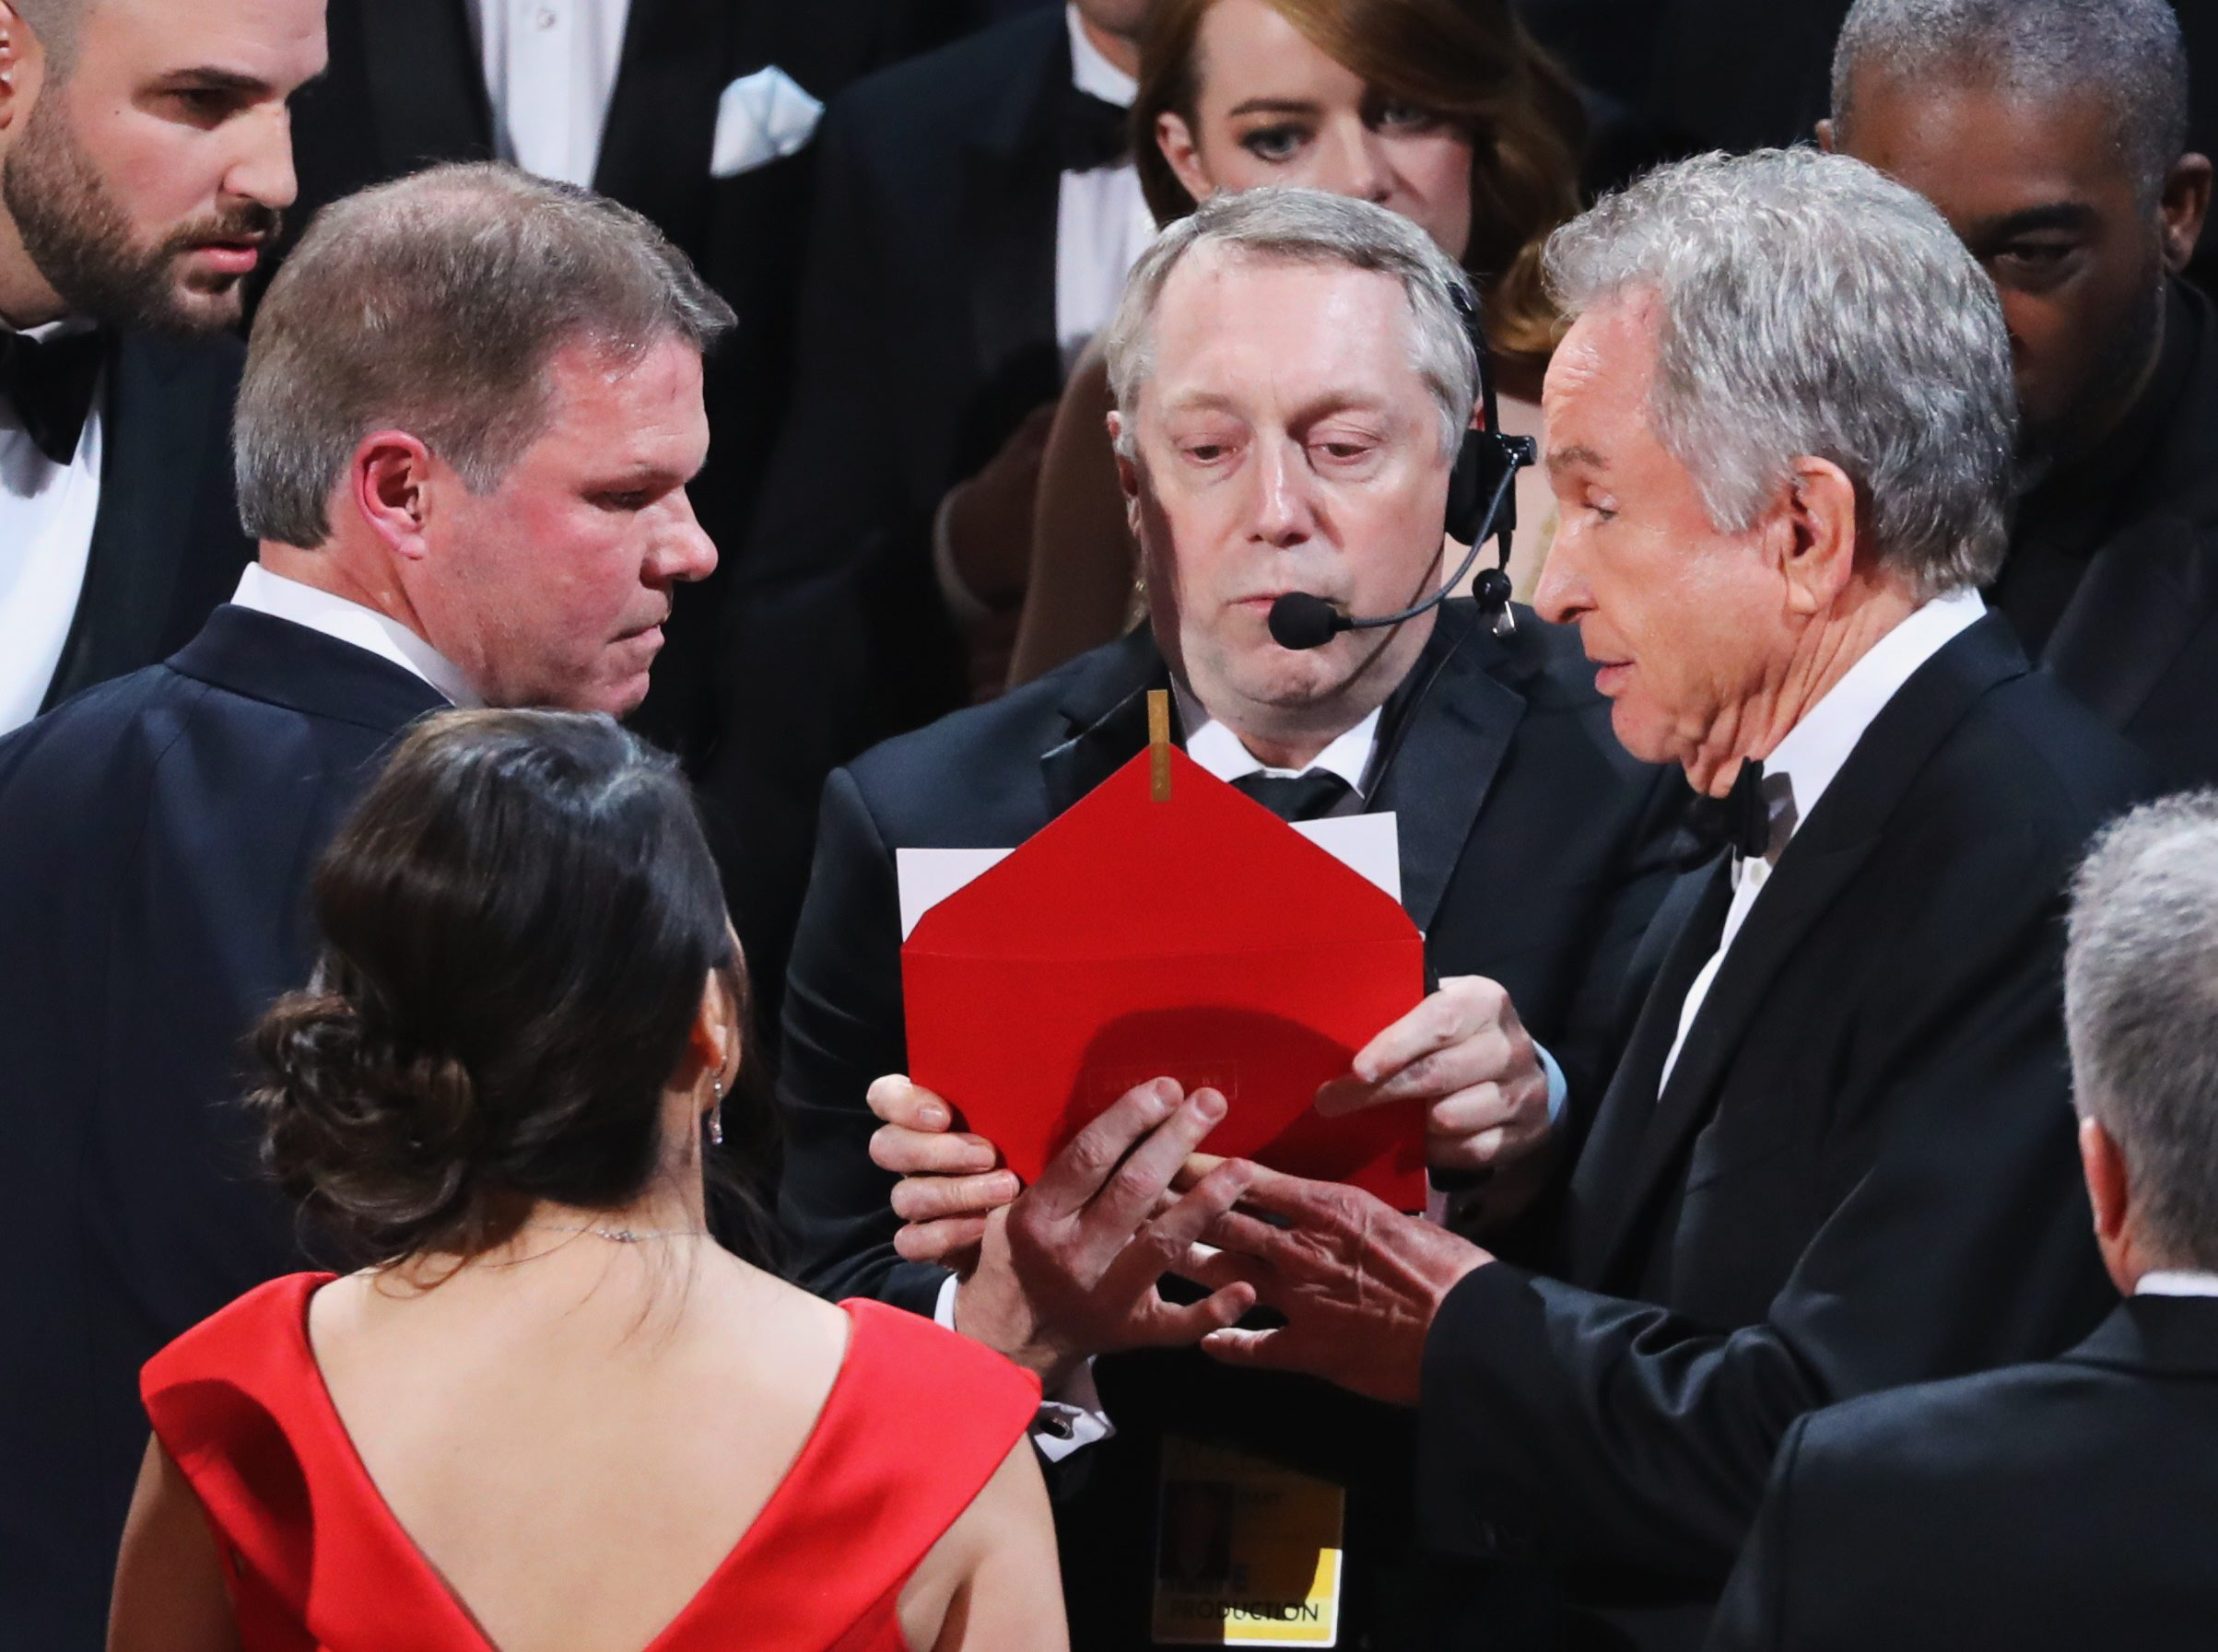 89th Academy Awards - Oscars Awards Show - Hollywood, California, U.S. - 26/02/17 - Warren Beatty looks on during presentation for Best Picture. REUTERS/Lucy Nicholson